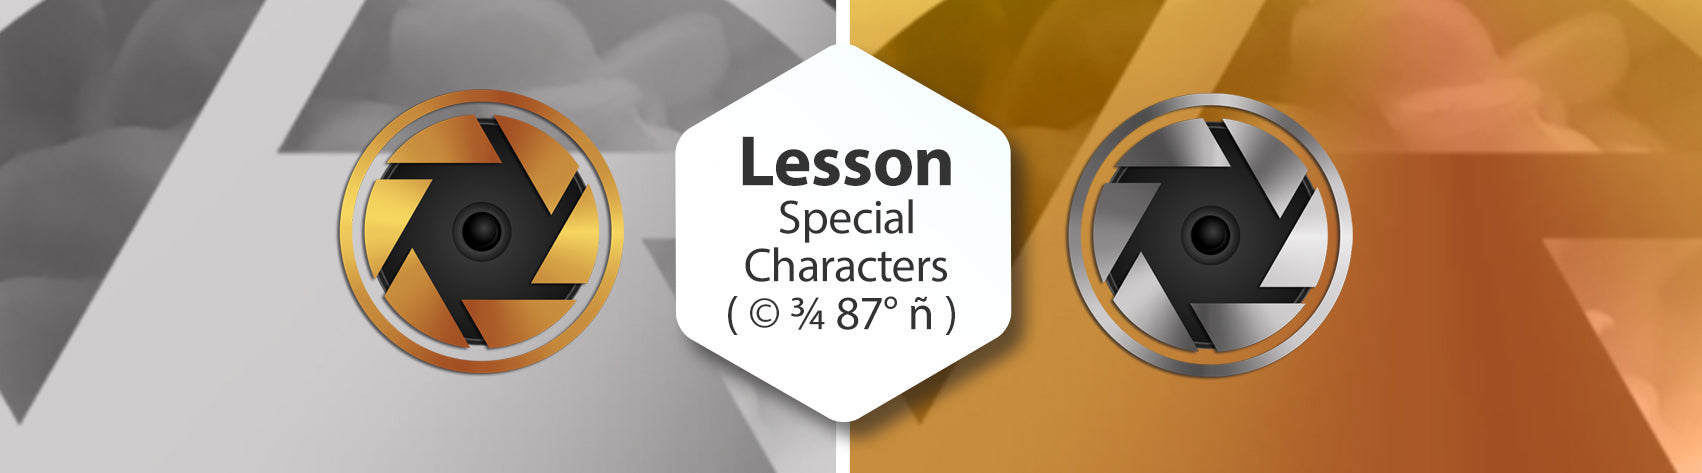 Lesson - Special Characters